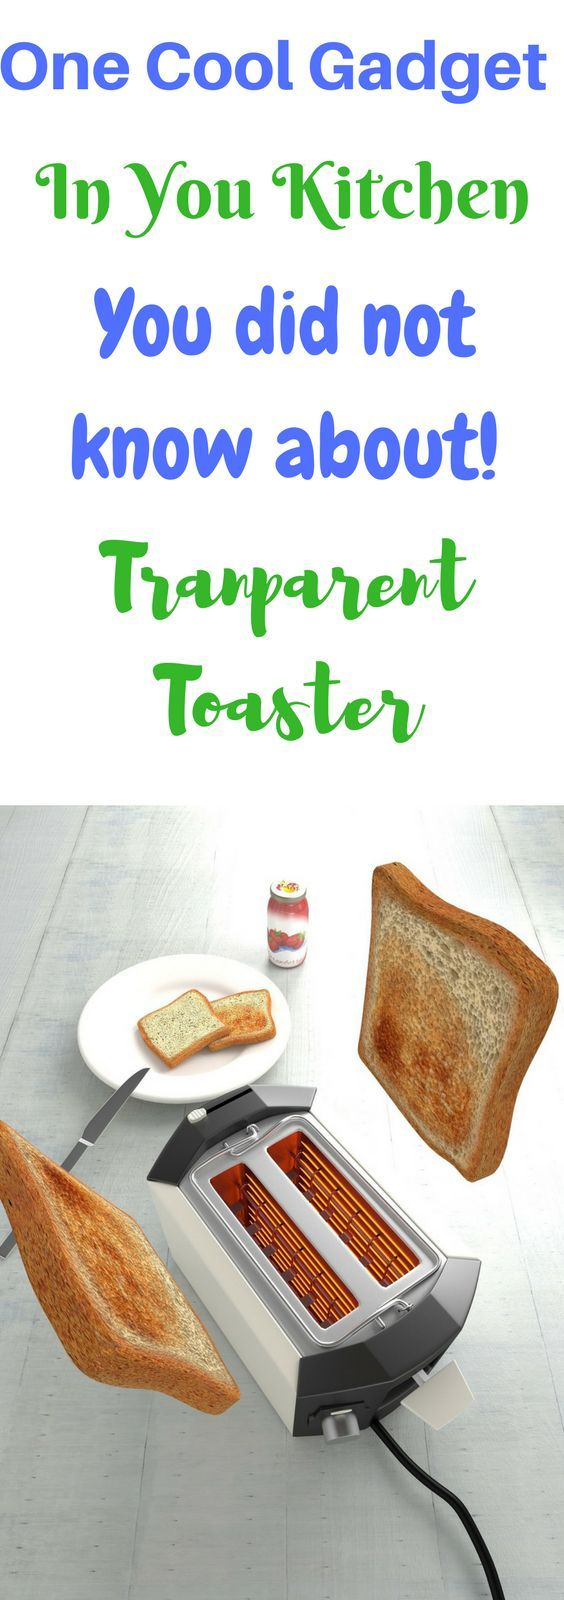 The coolest gadgest for your kitchen that you did not know about! #transparenttoaster, #kitchen ideas, #breakfast, #homegadgets, #kitchenorganization, #kitchenmodern, #kitchendream, #kitchenmodern, #kitchenappliances, #kitchengadgets, #kitchenutensiles, #kitchenaccessories, #kitchendecoration, #kitchengadgetsmusthave,